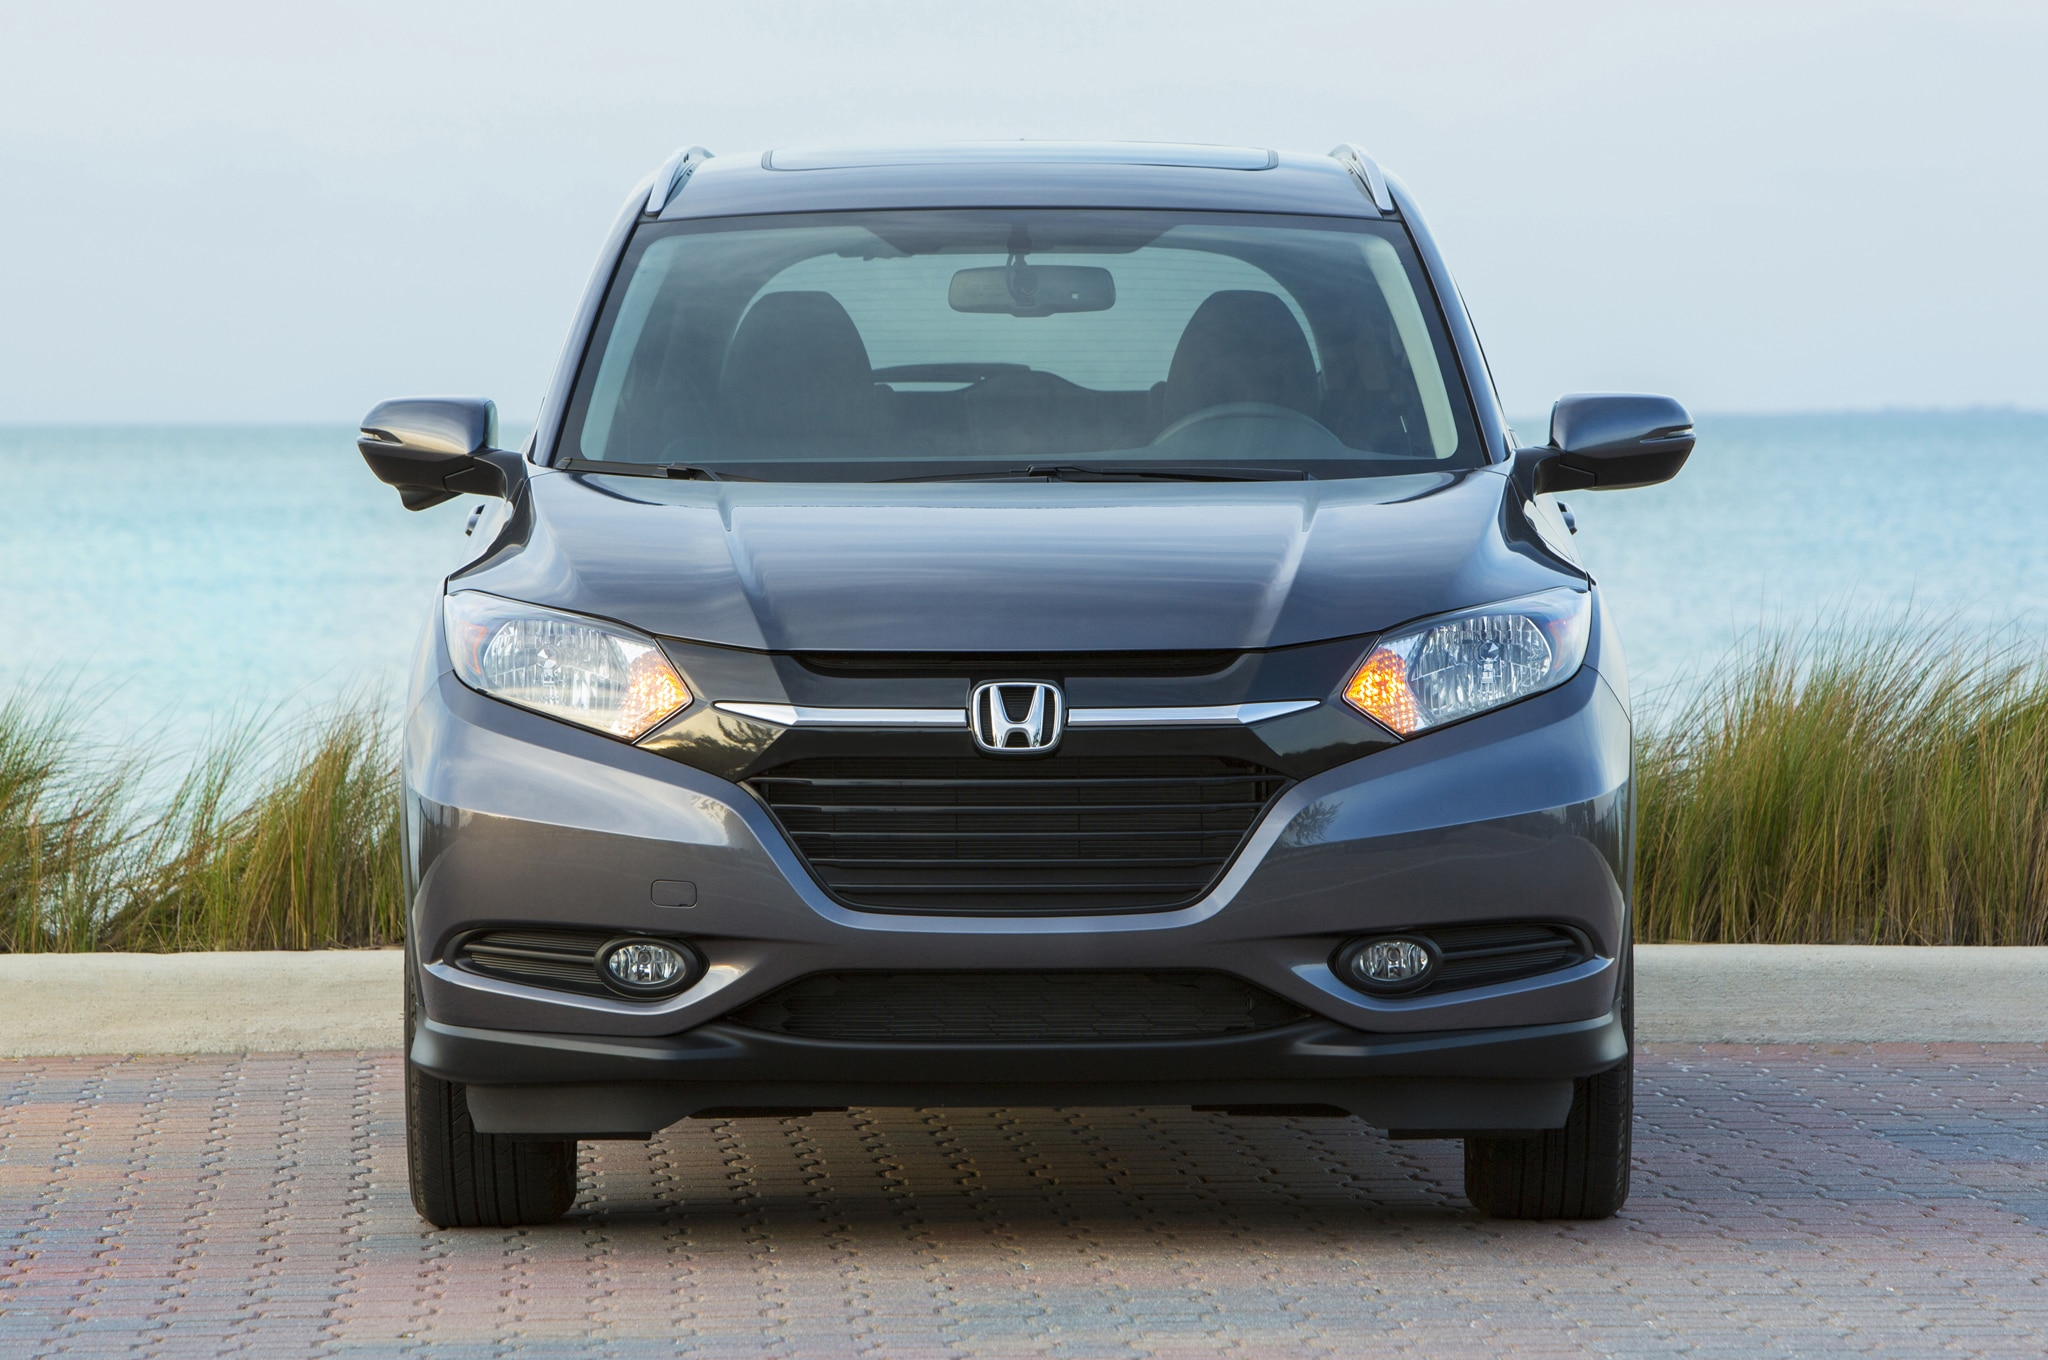 Model 2016 Honda HRV Review